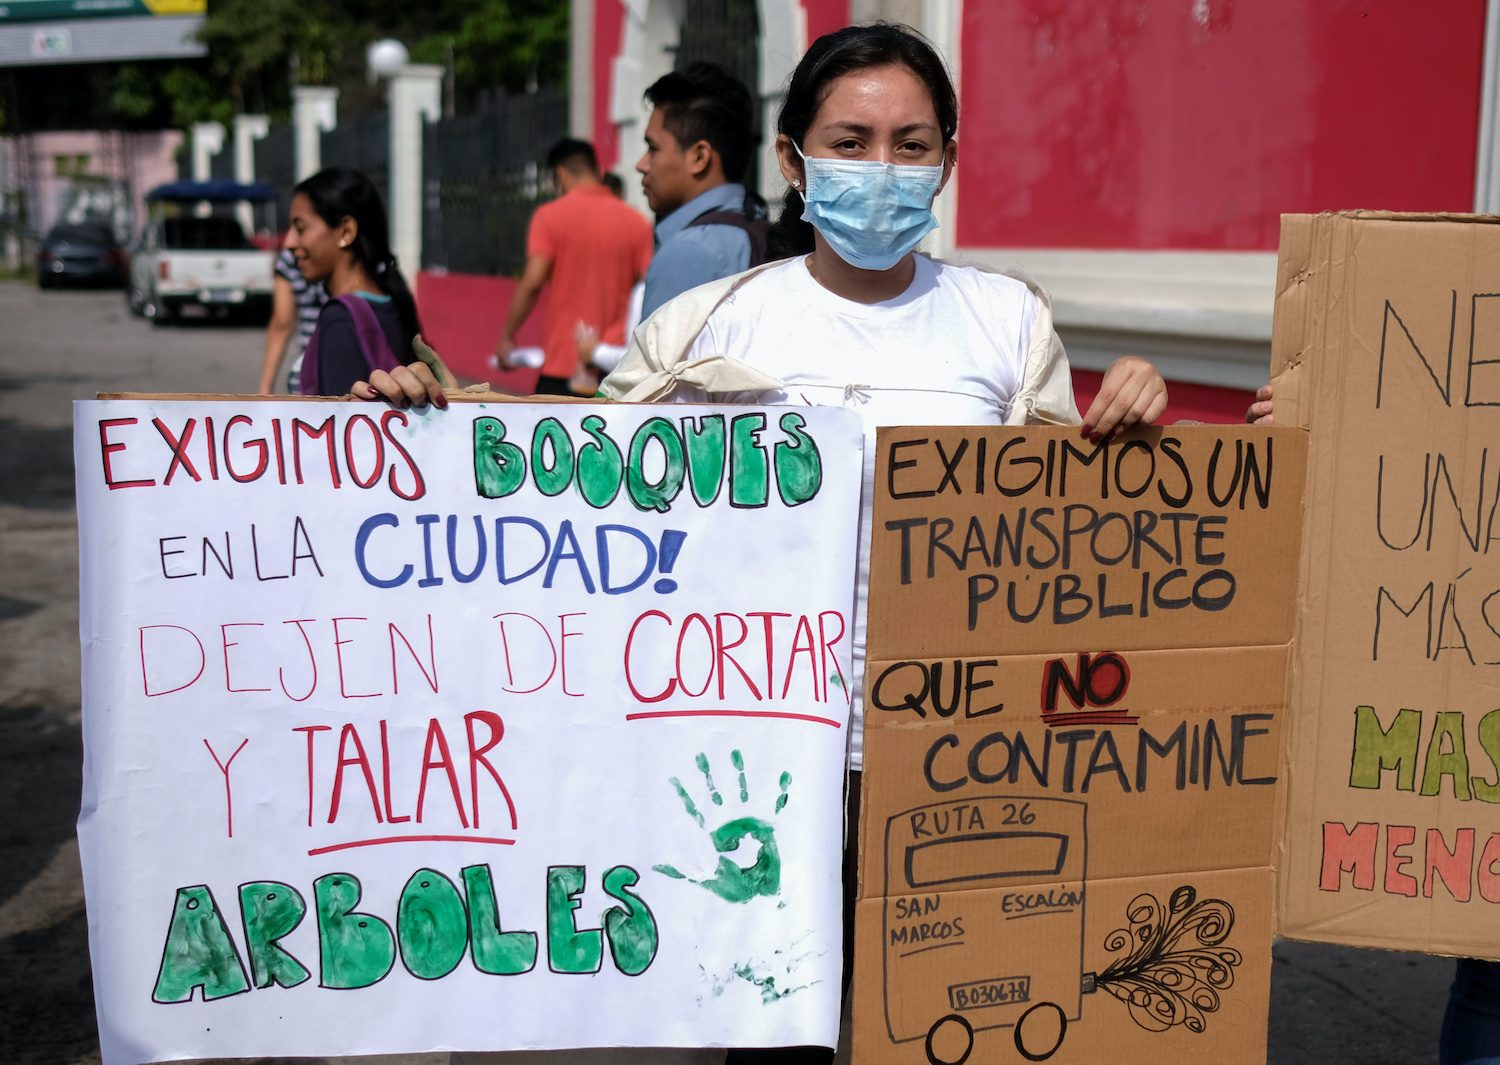 Addressing Instability in Central America: Restrictions on Civil Liberties, Violence, and Climate Change